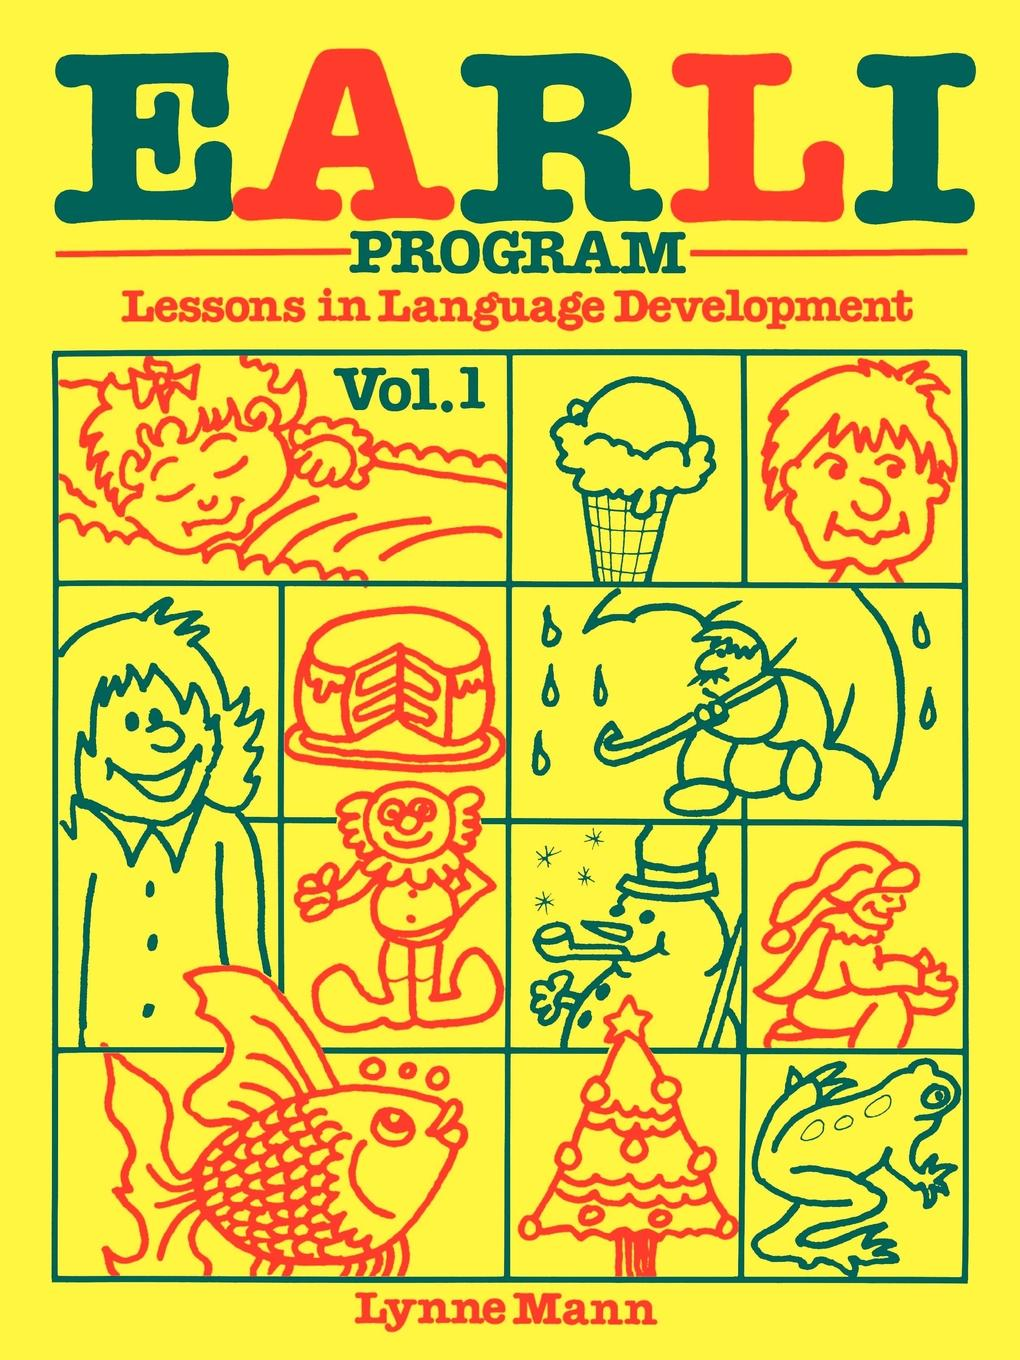 EARLI Program Vol. I By: Lynne Mann